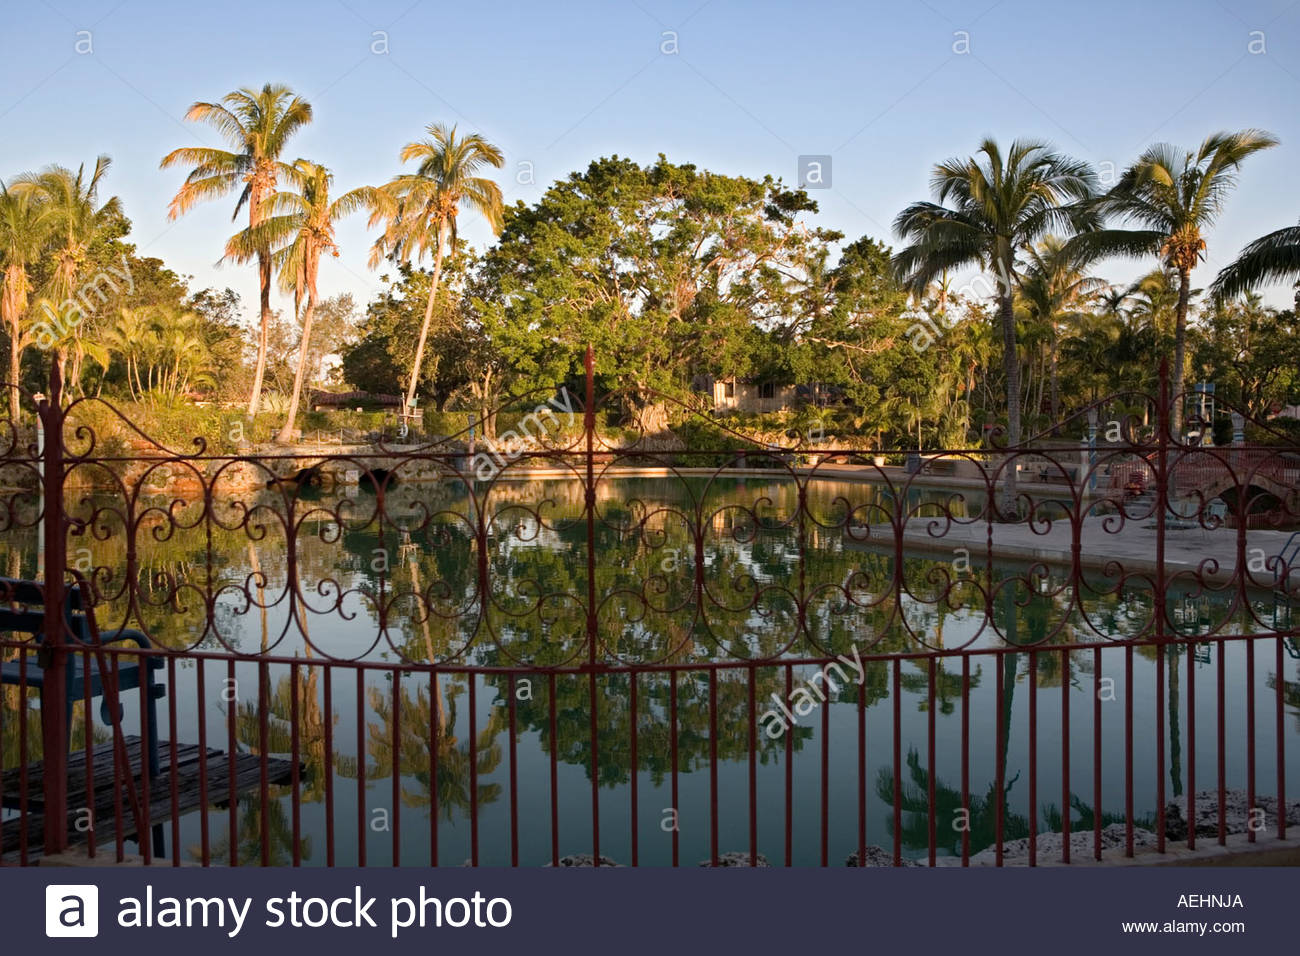 Decorative wrought iron fence surrounds Venetian Pool in Coral Gables Miami - Stock Image